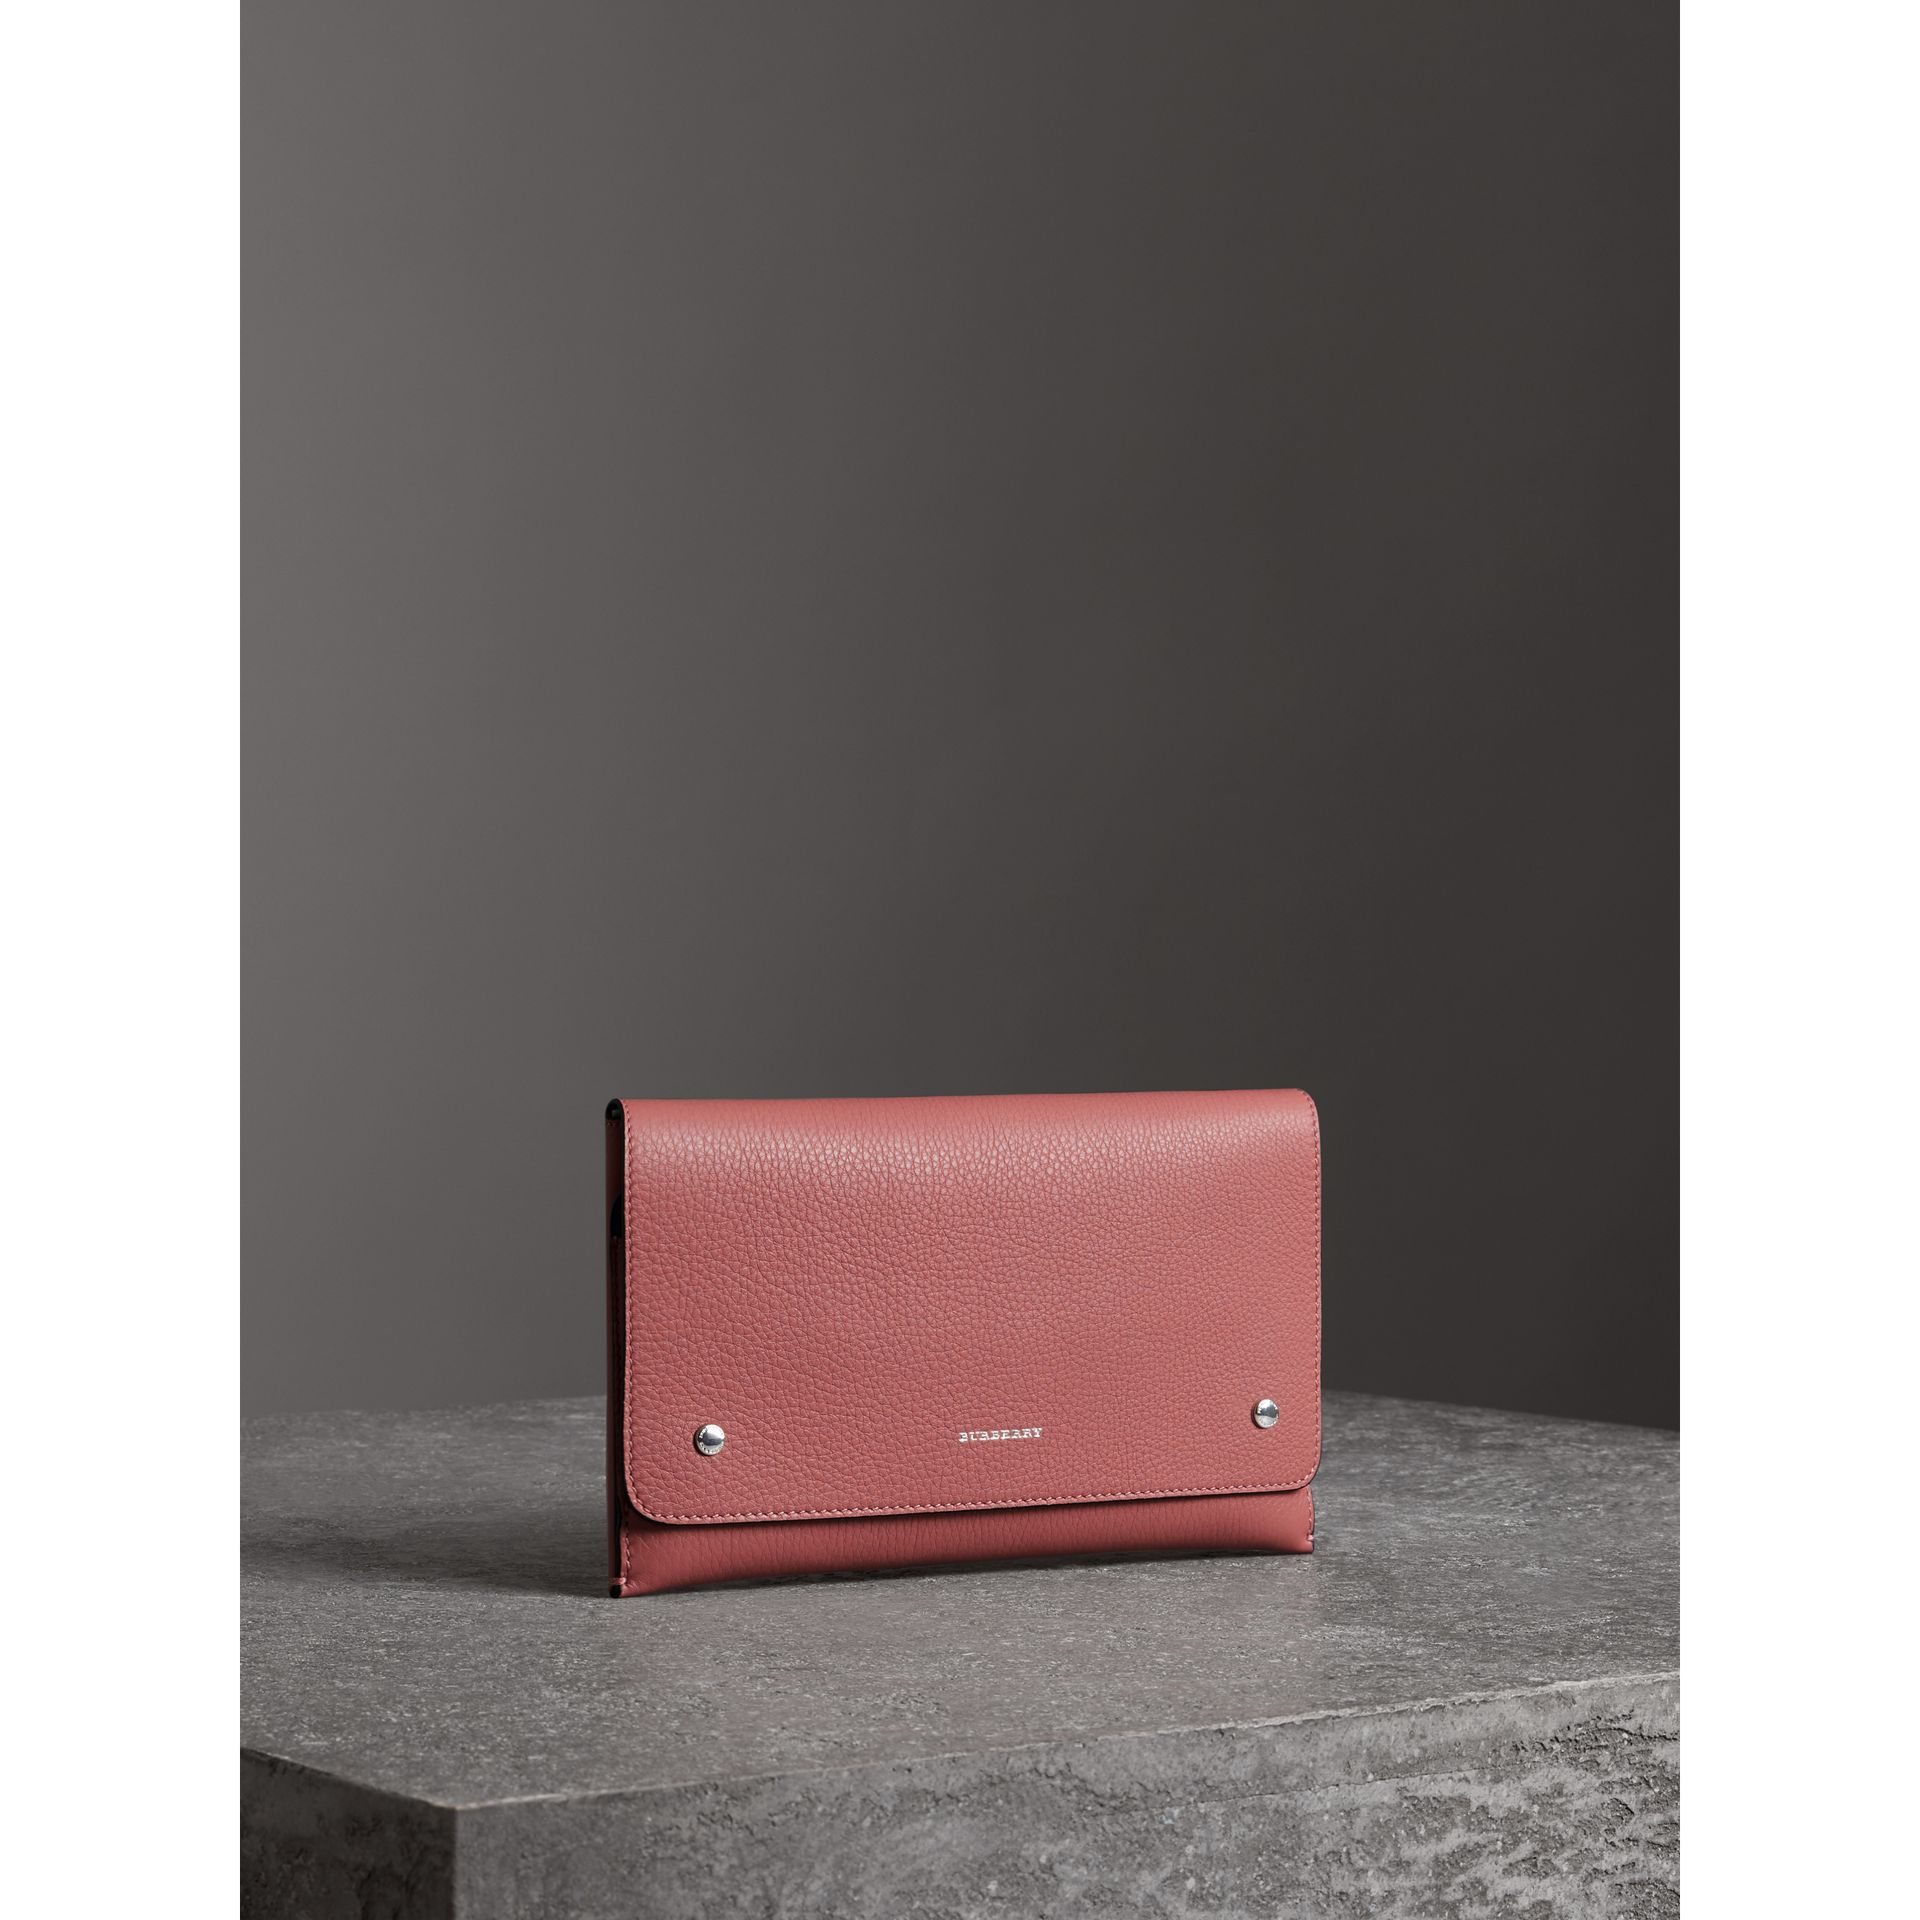 Two-tone Leather Wristlet Clutch in Dusty Rose - Women | Burberry - gallery image 4